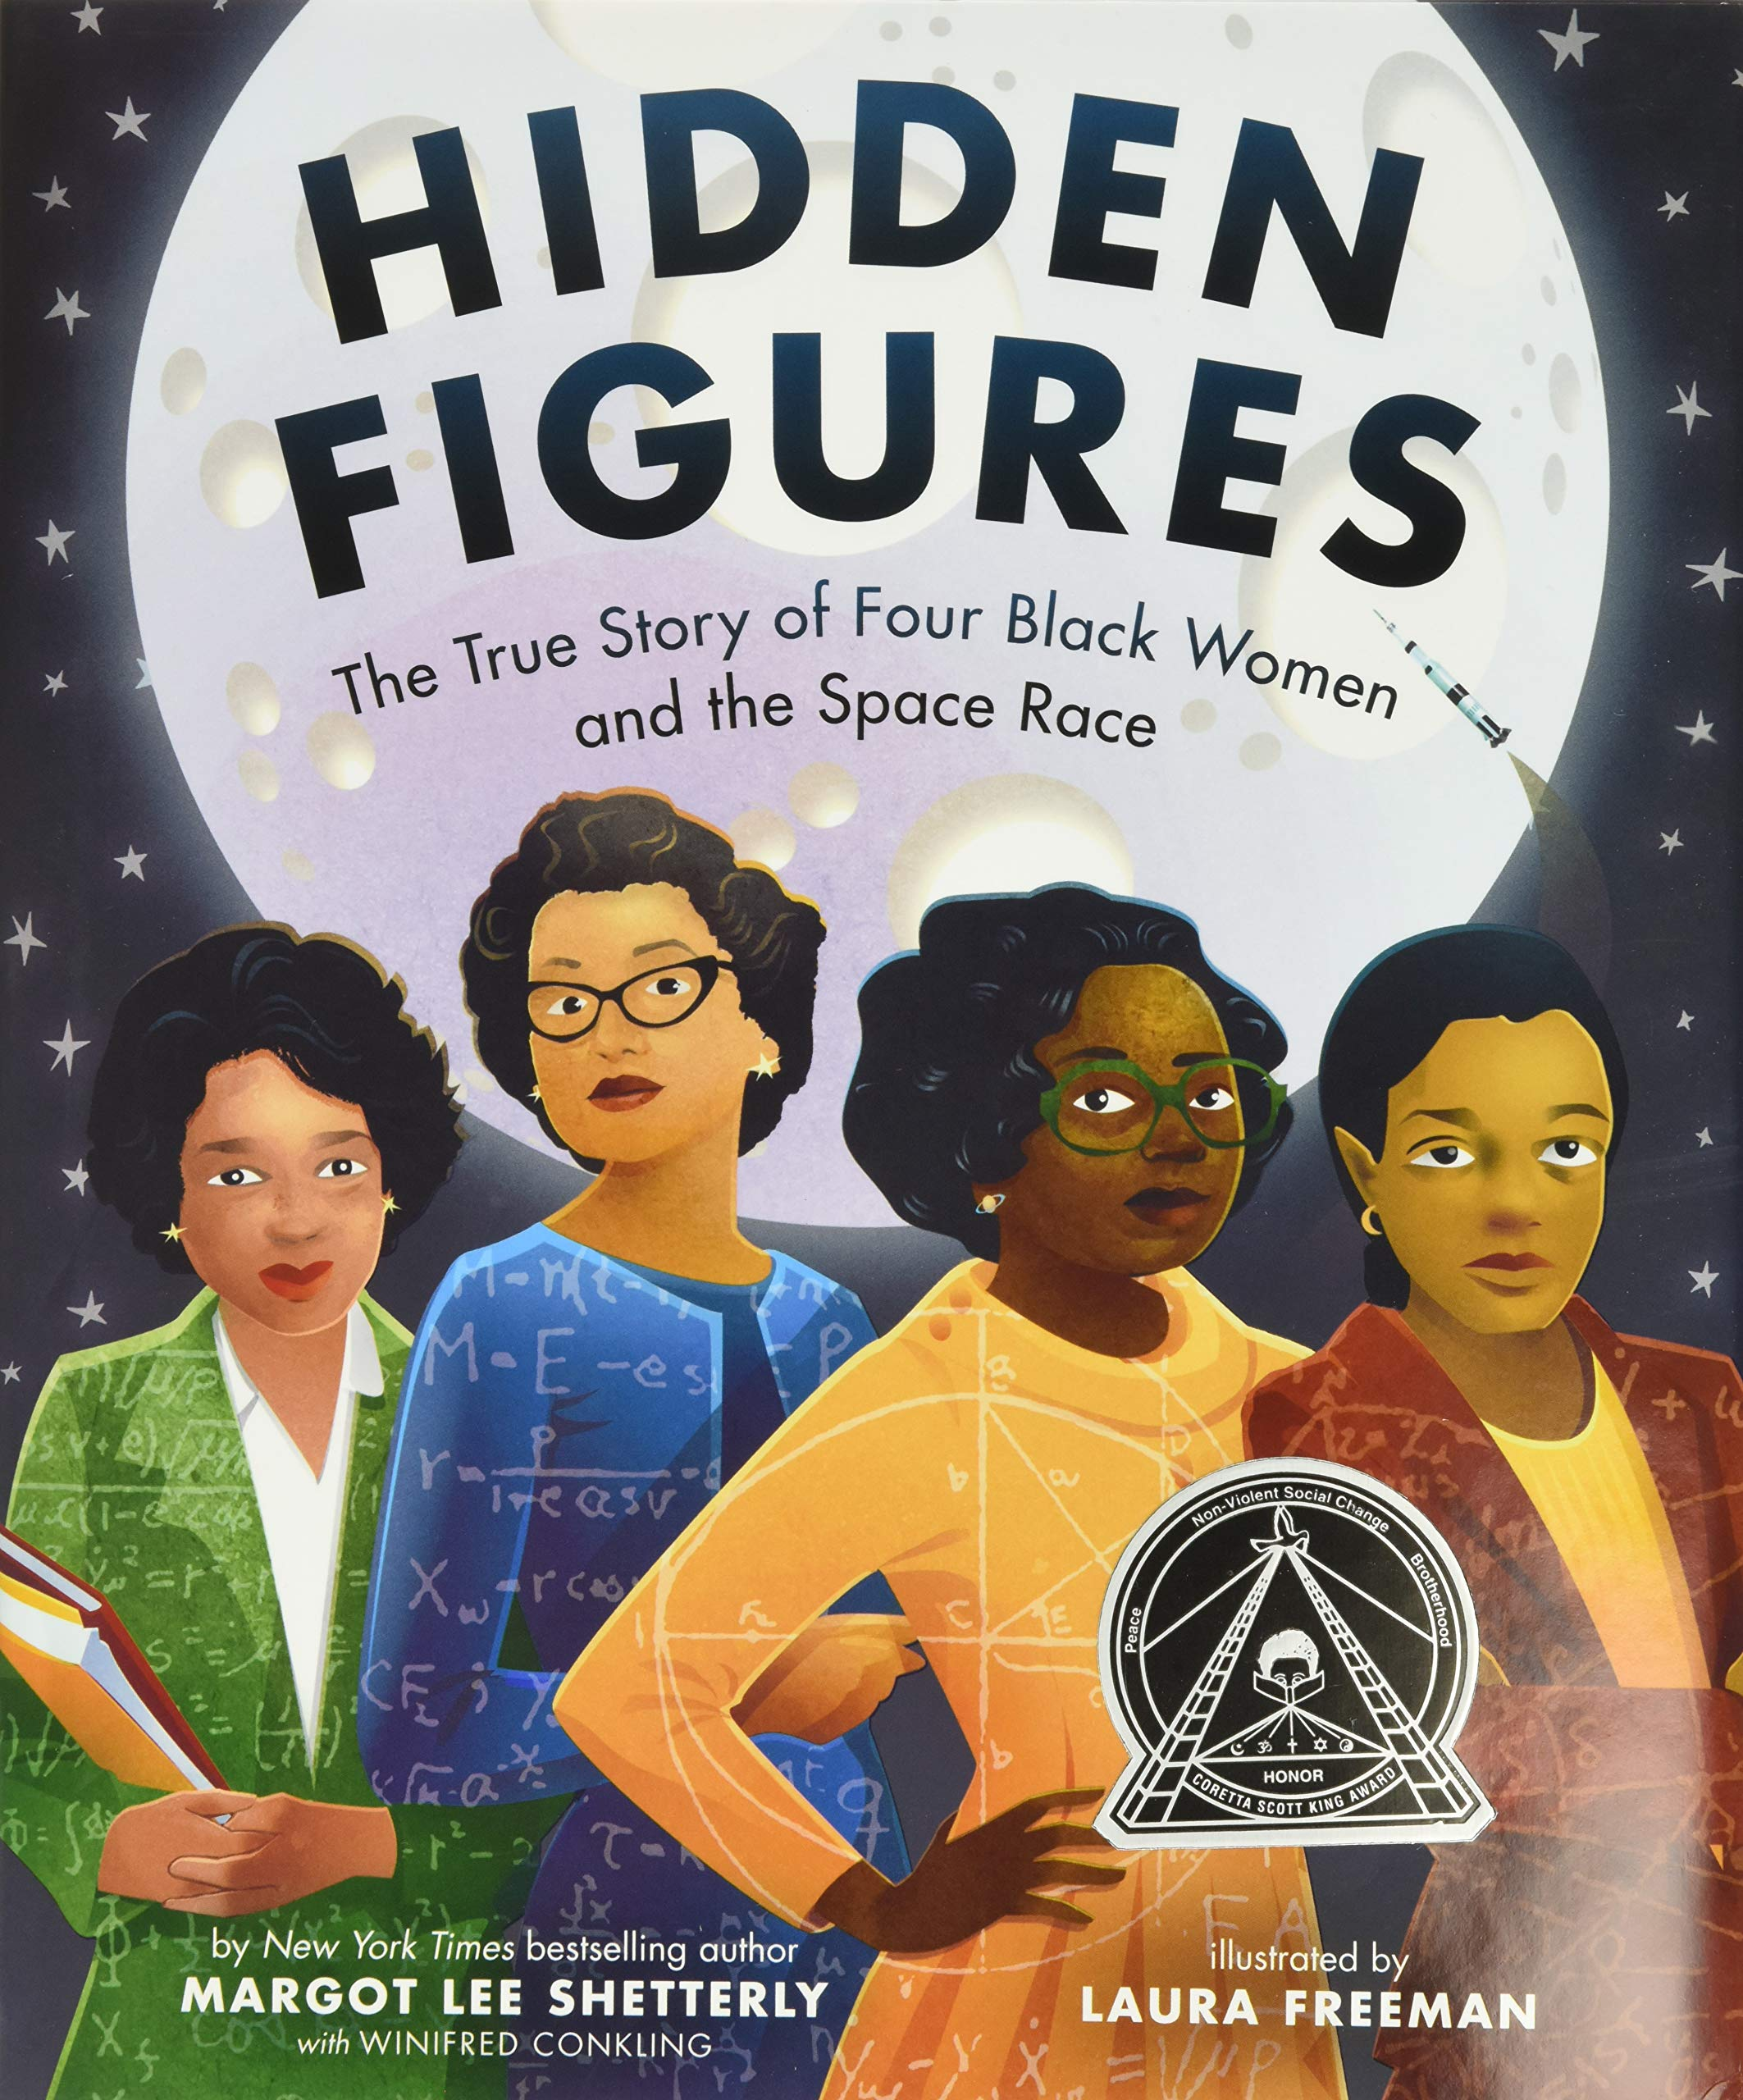 Hidden Figures Opens in new window